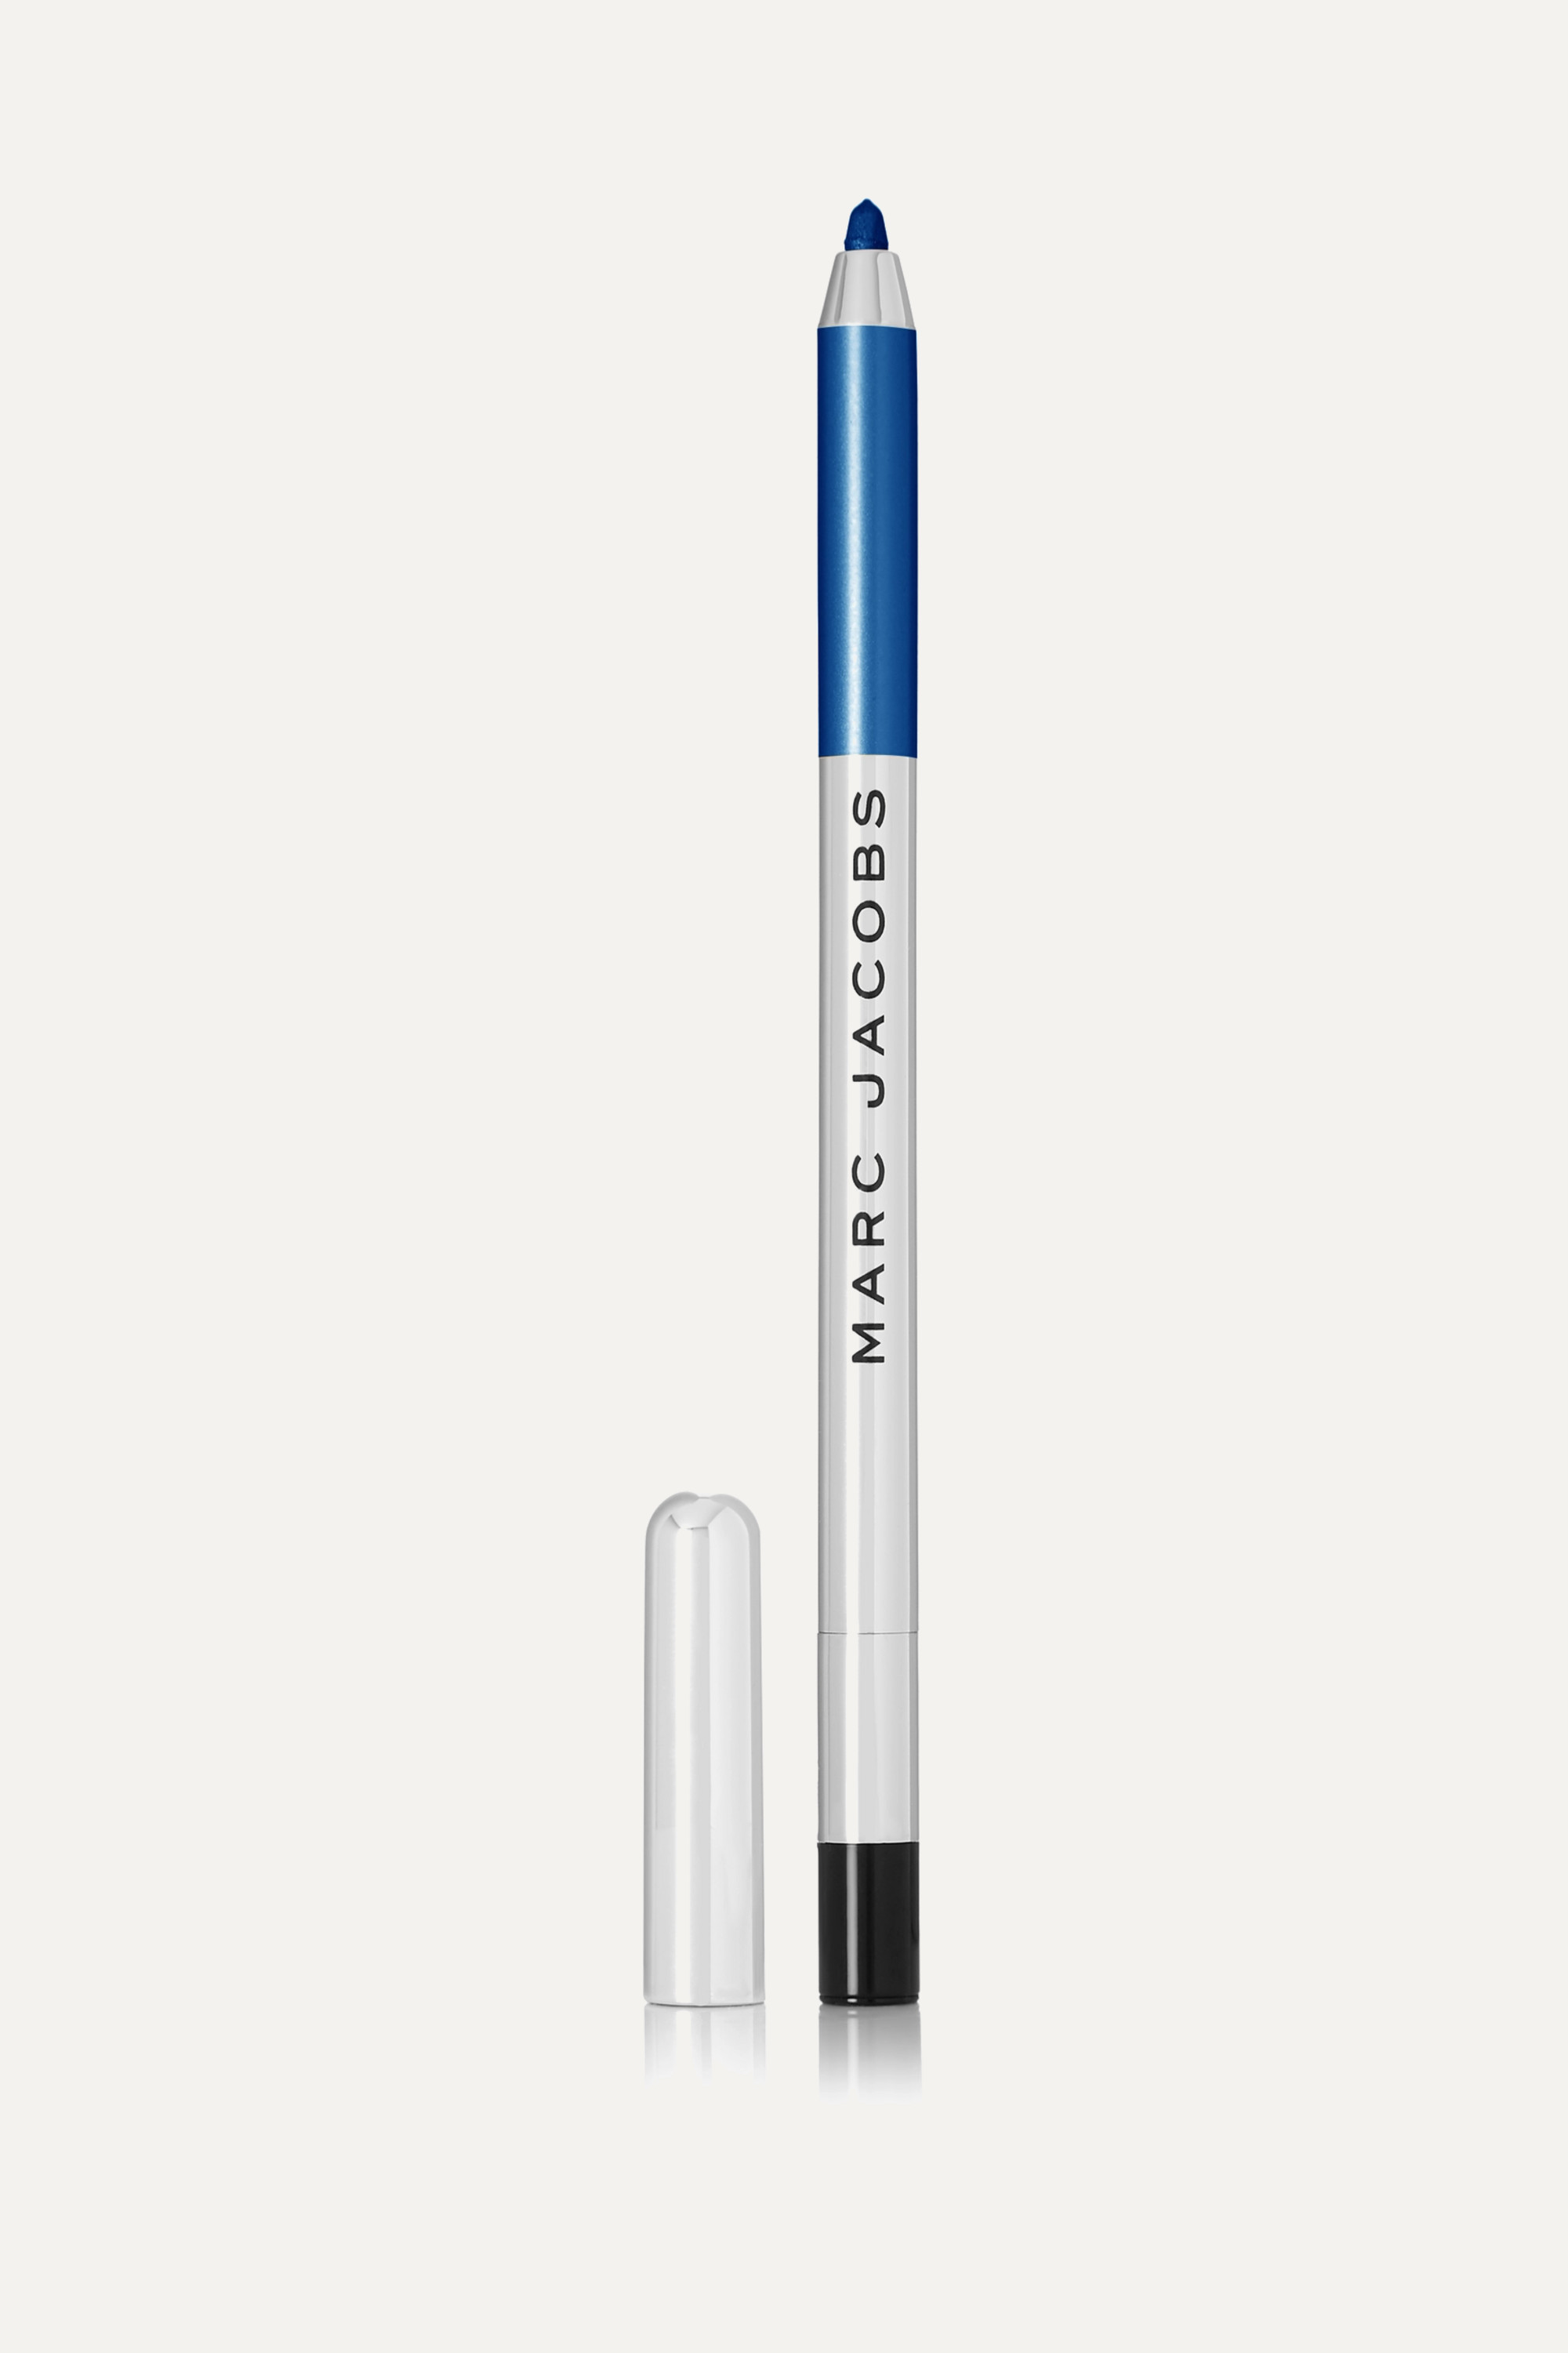 Marc Jacobs Beauty Highliner Gel Eye Crayon - (Wave)Length 68